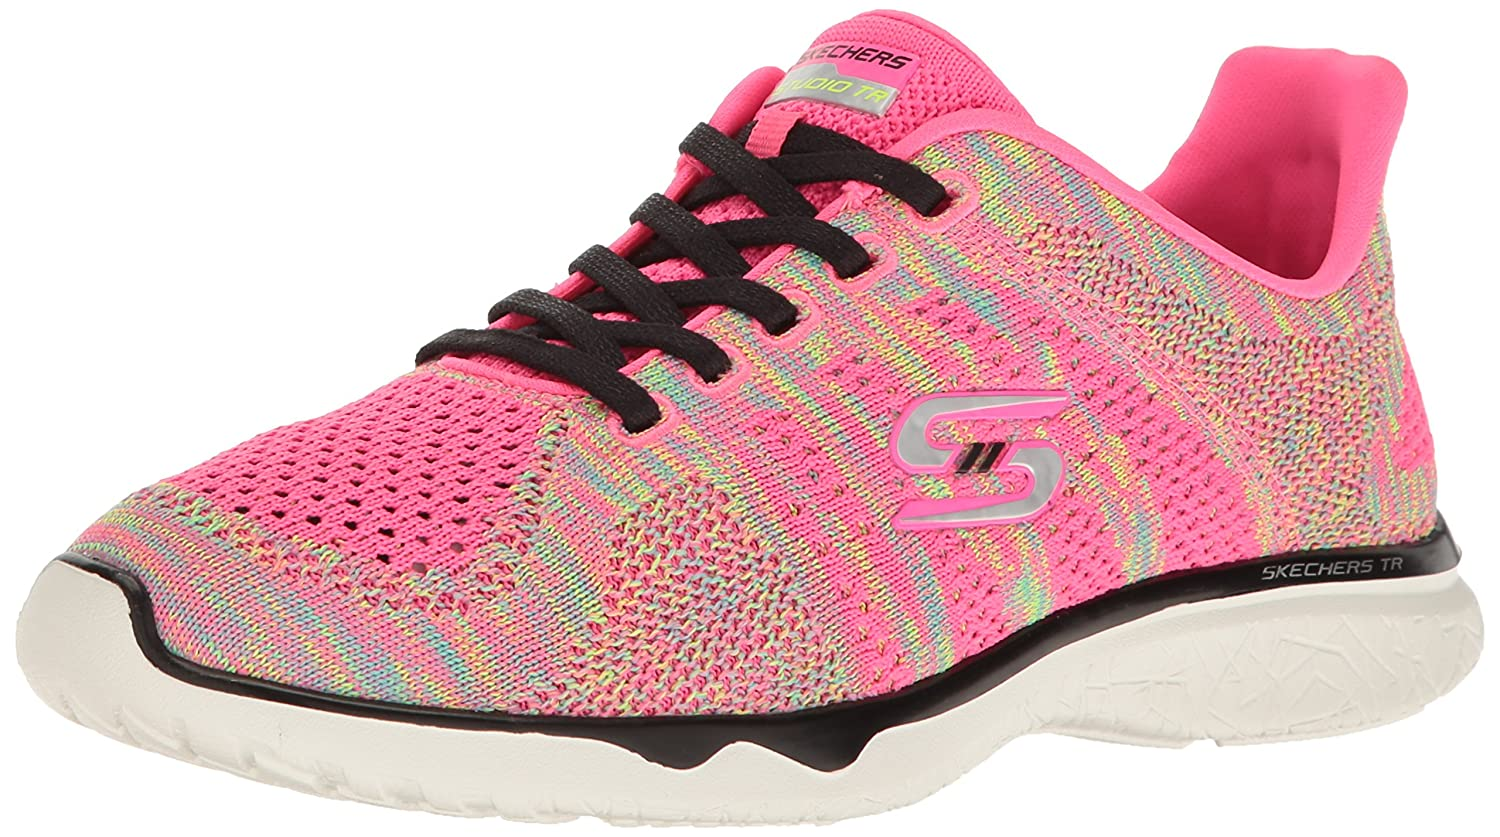 Skechers Sport Women's Studio Burst Virtual Reality Fashion Sneaker B01K4I4RR4 9.5 B(M) US|Neon Pink/Black